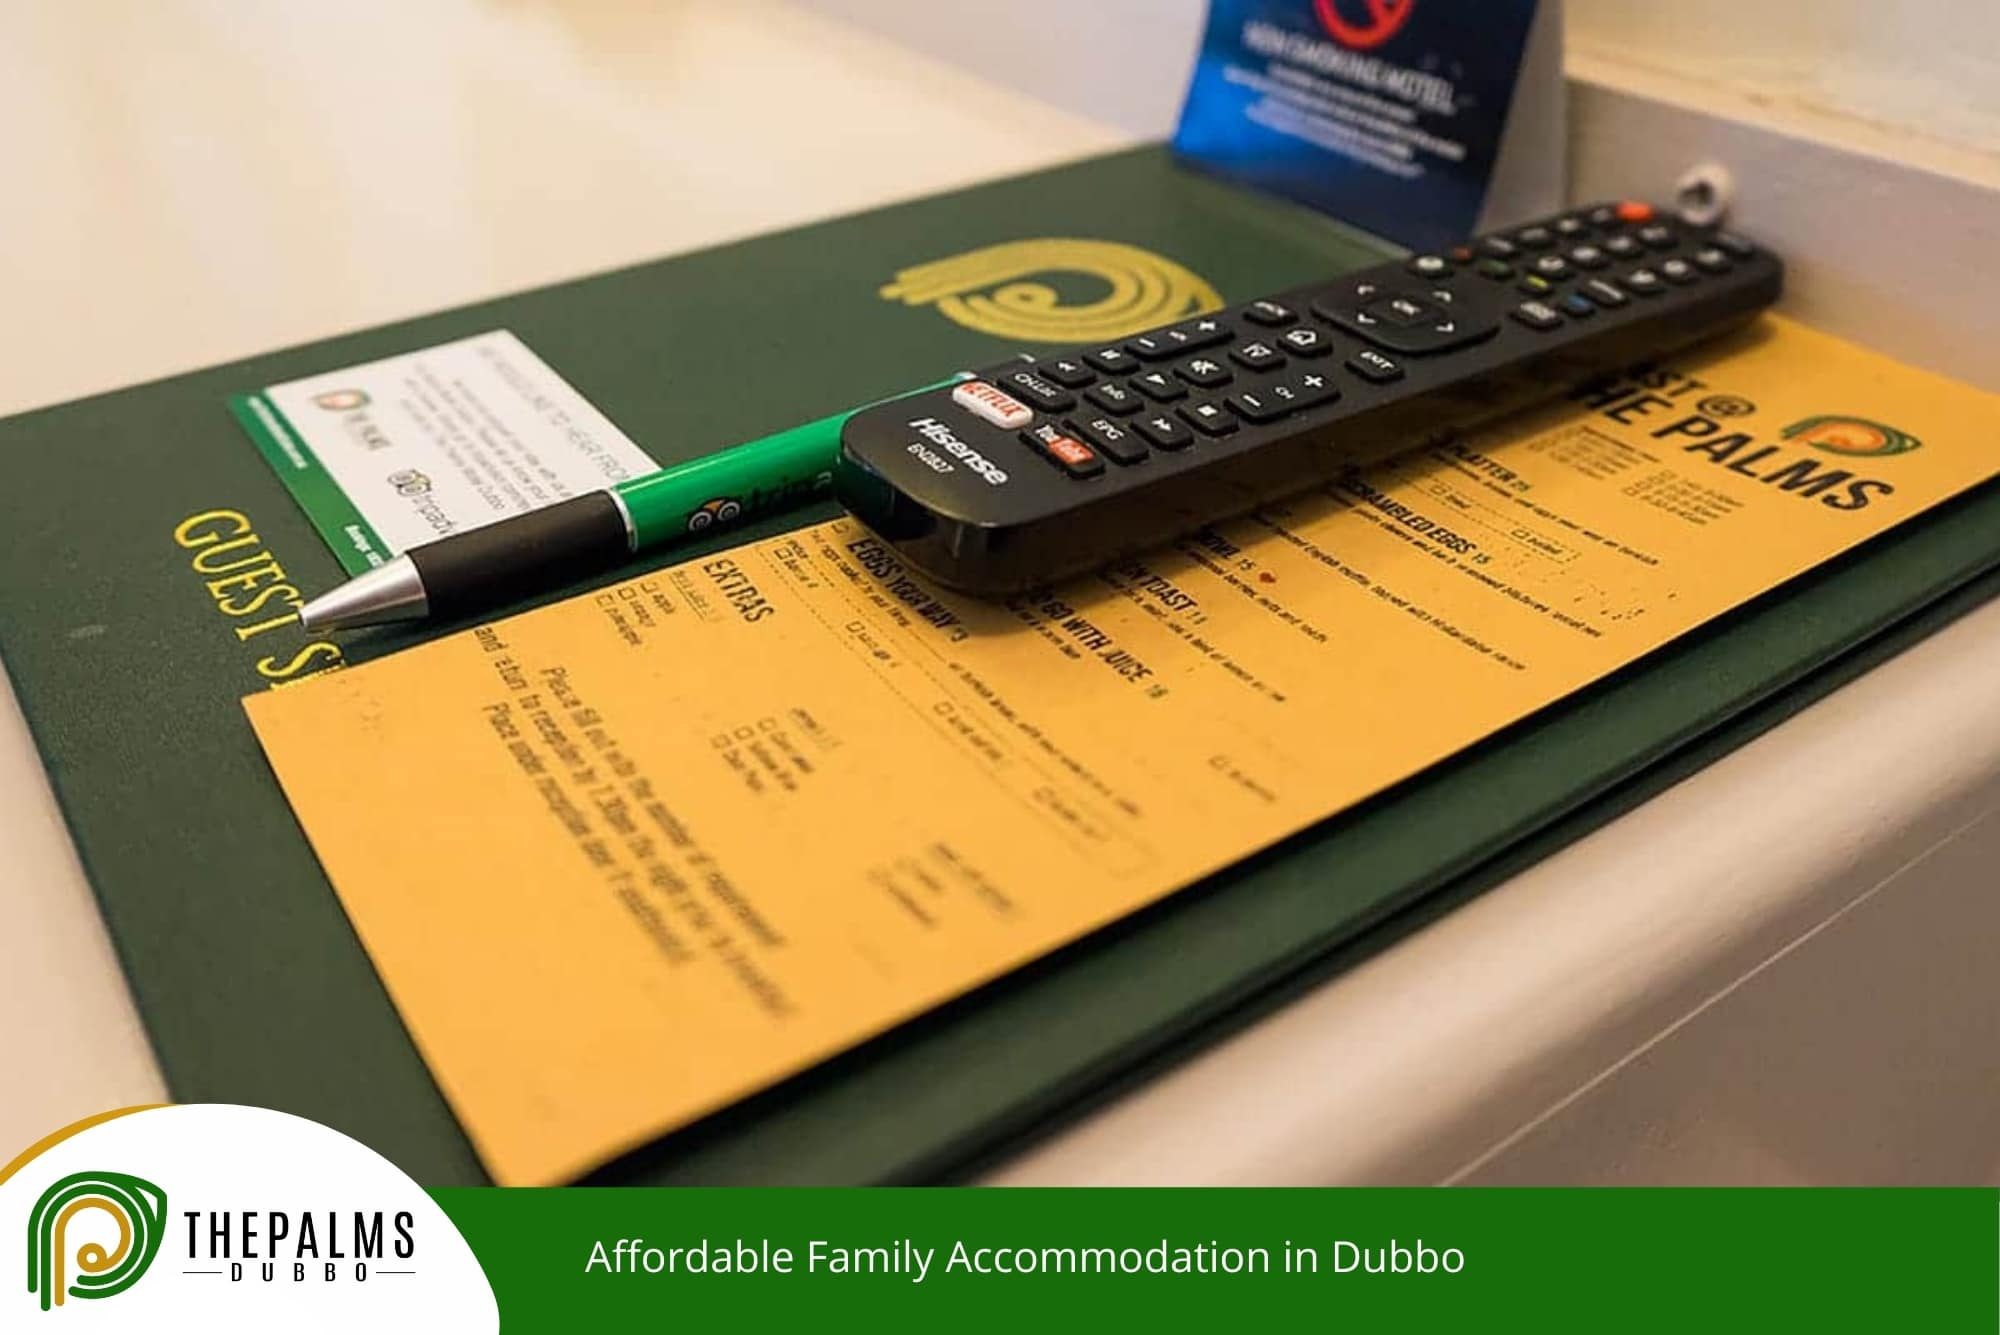 Affordable Family Accommodation in Dubbo